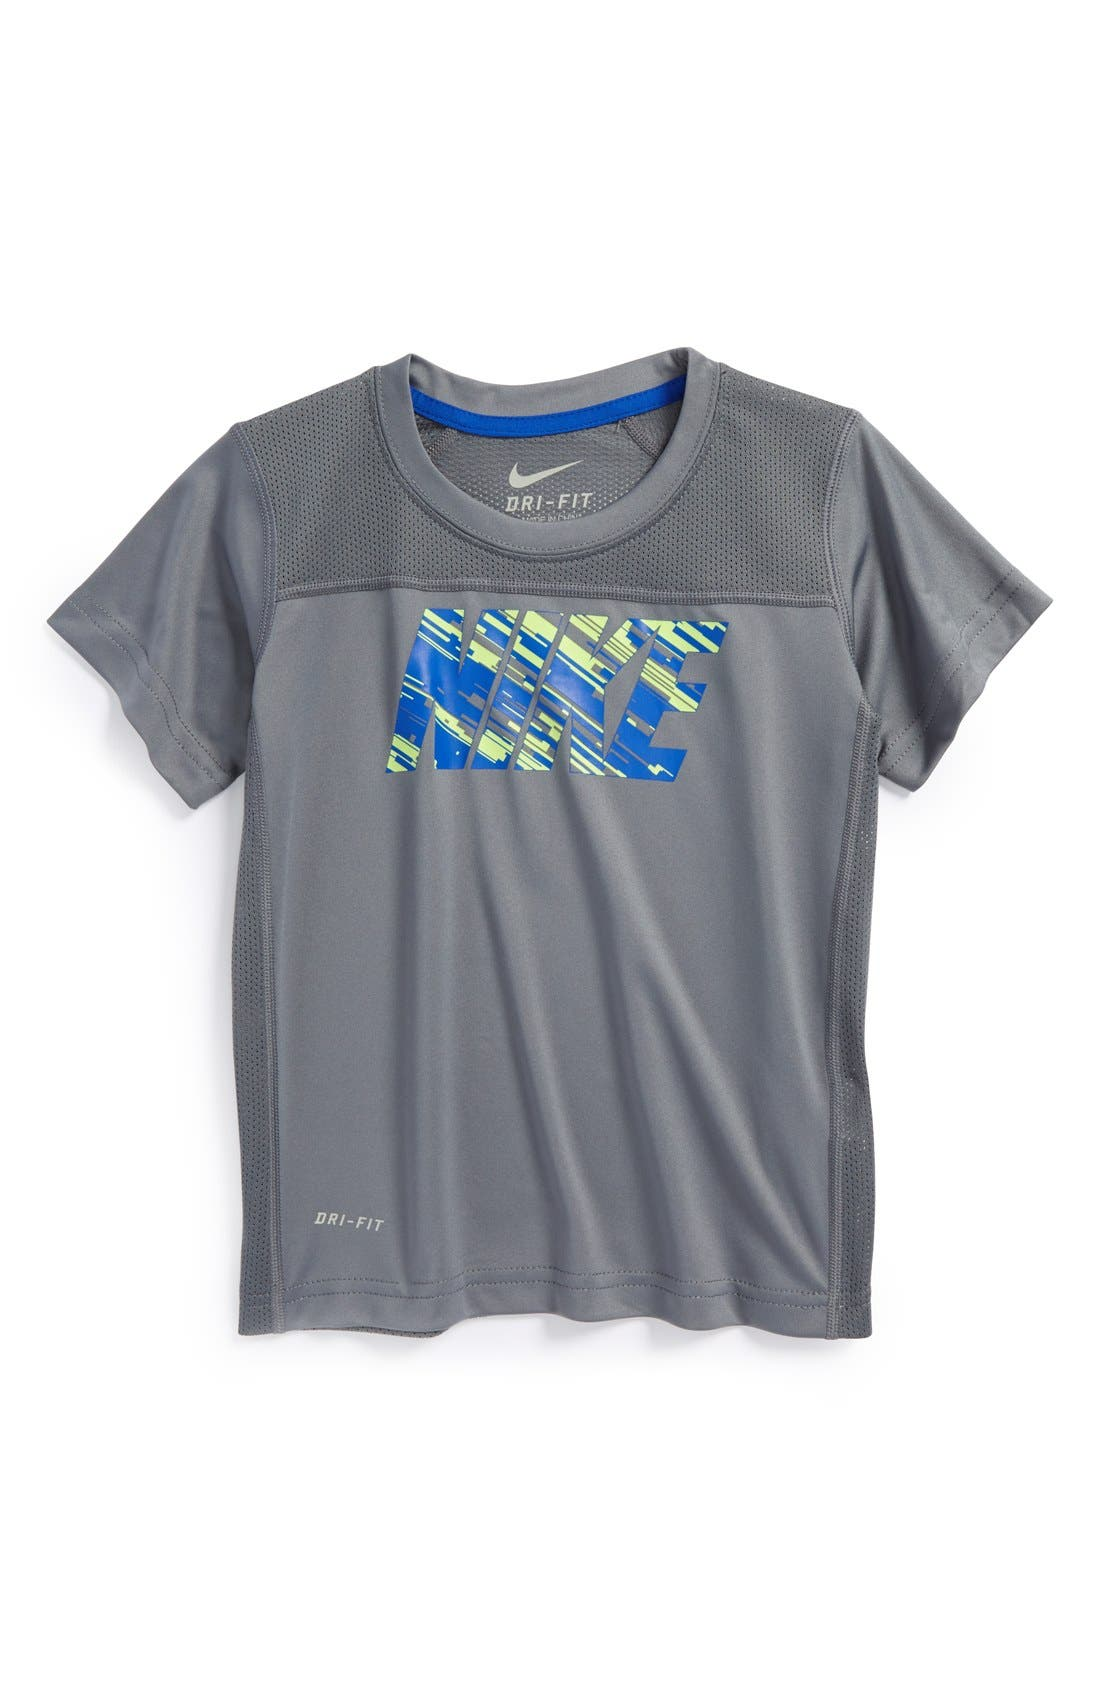 Alternate Image 1 Selected - Nike 'Hyper Speed GFX' Mesh Panel Short Sleeve T-Shirt (Toddler Boys)